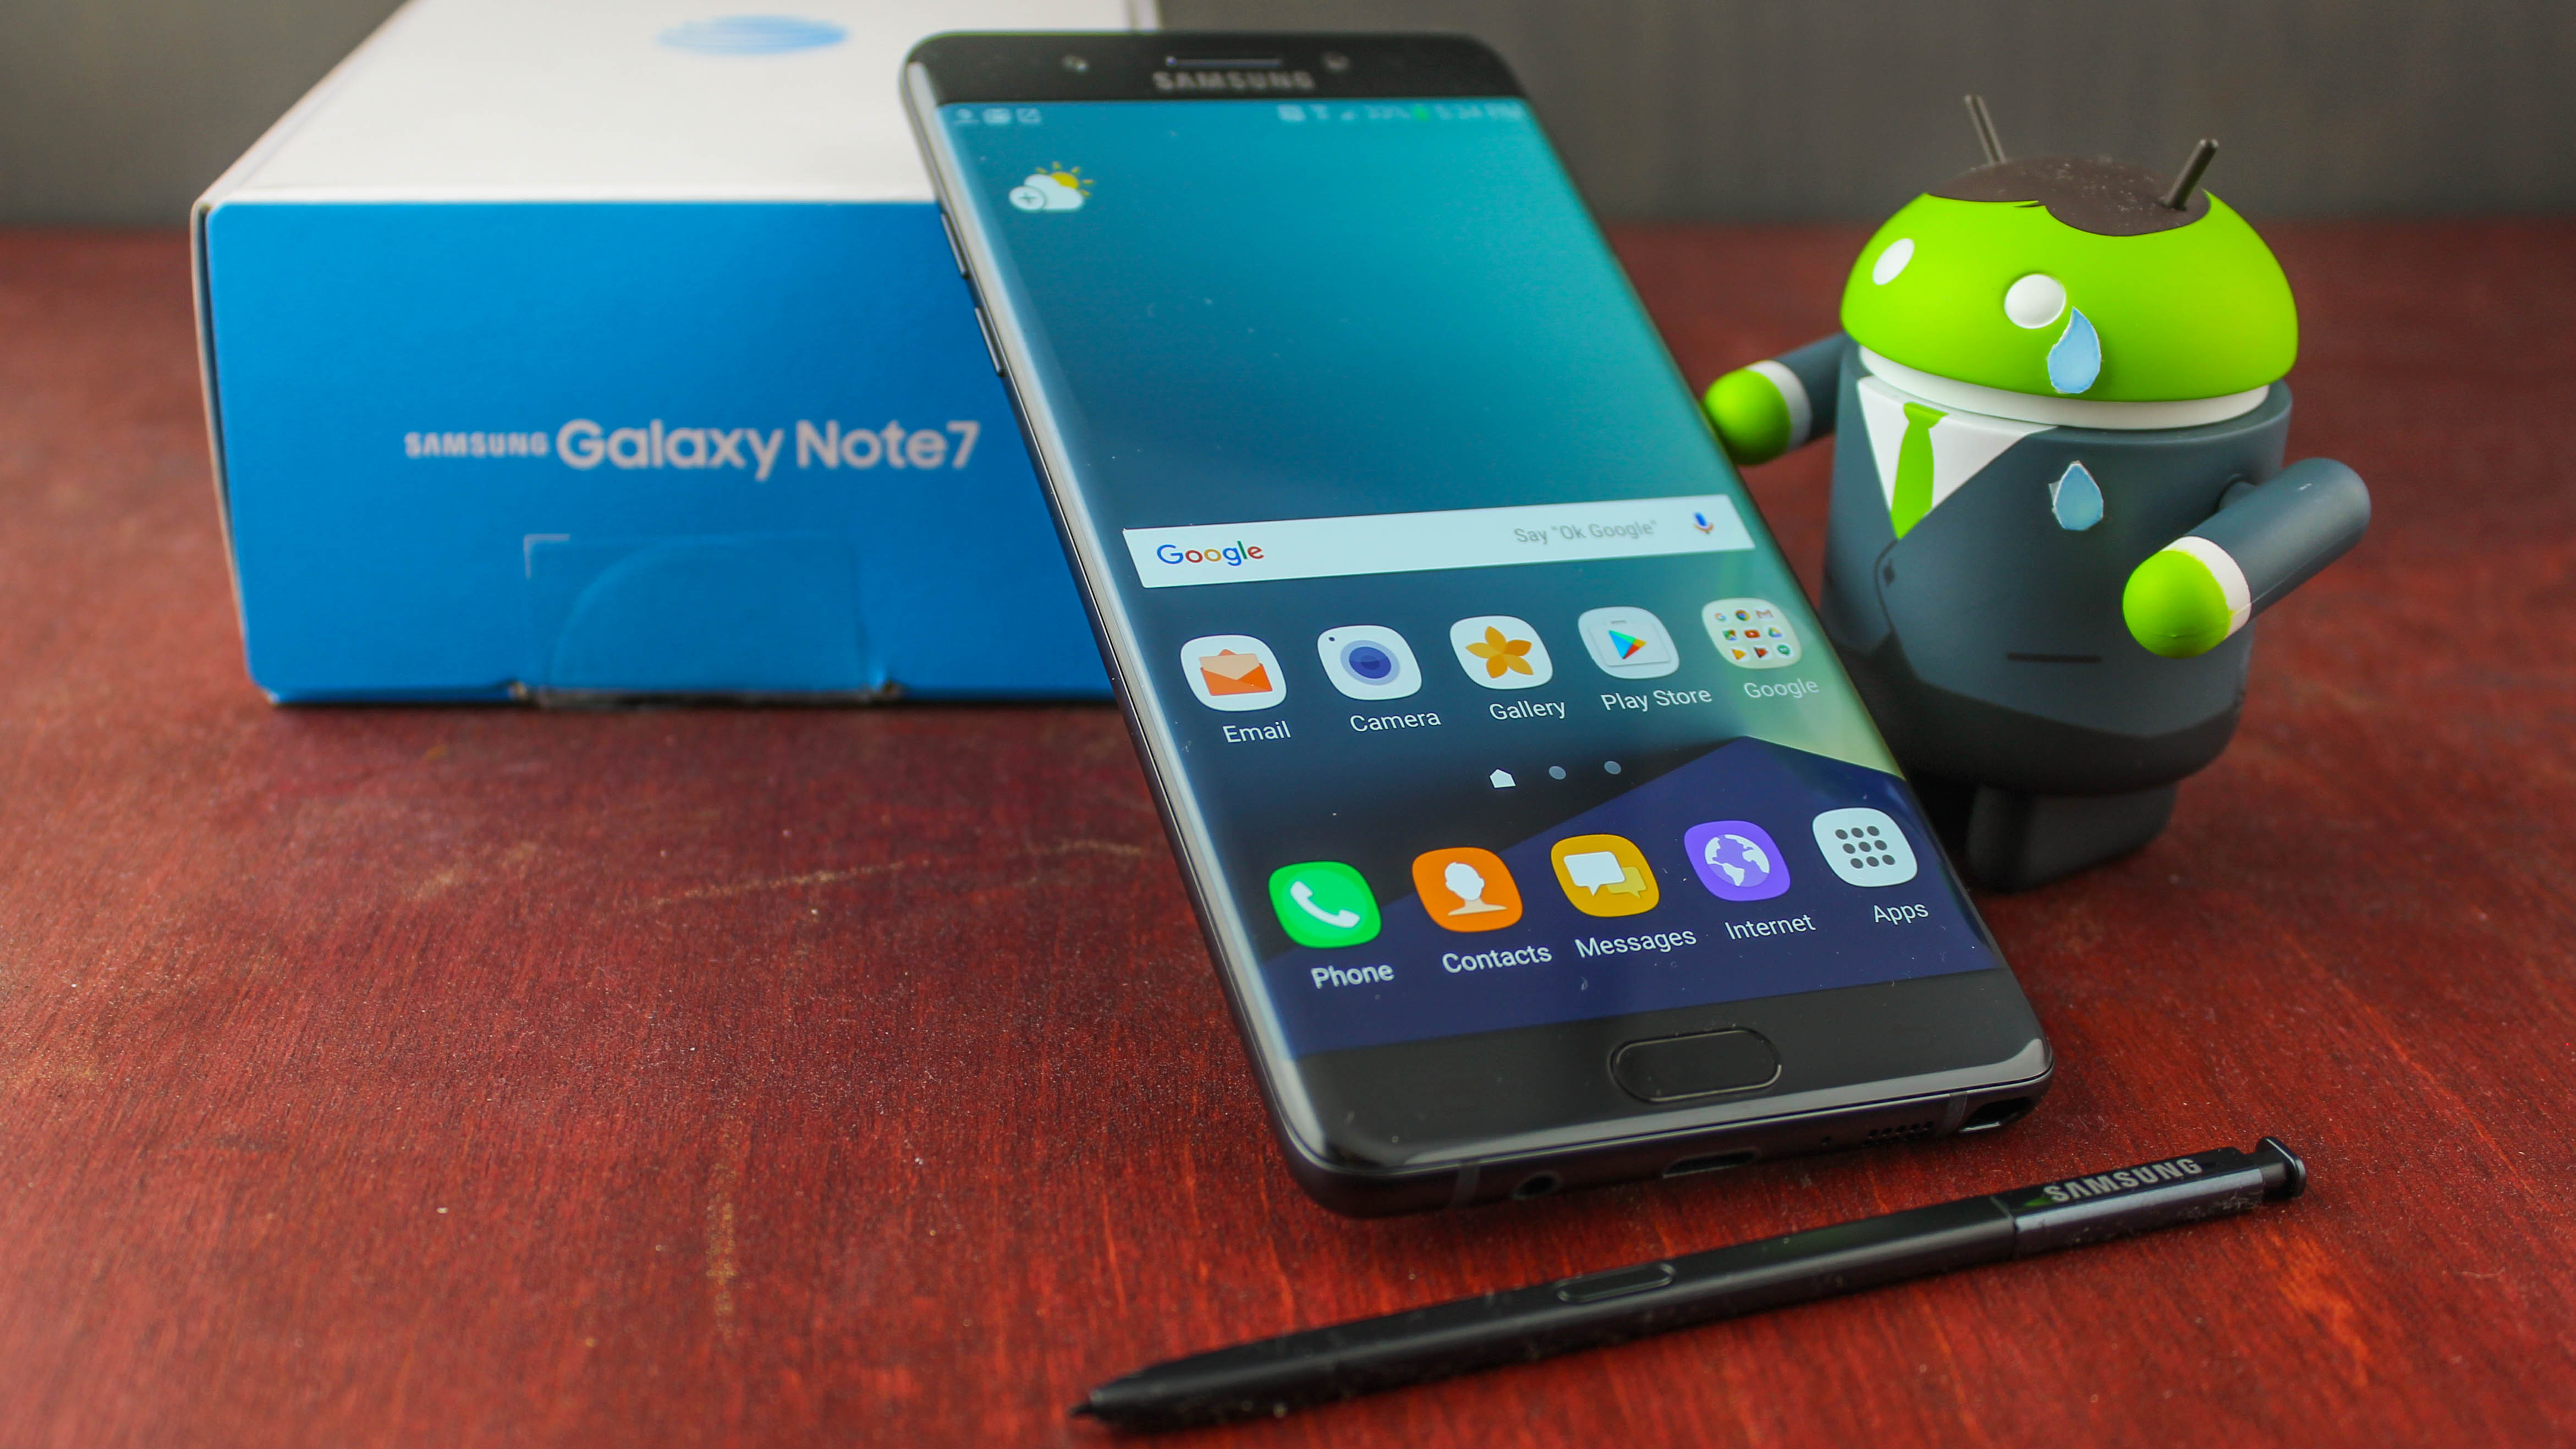 Here's why the Samsung Galaxy Note 7 batteries caught fire